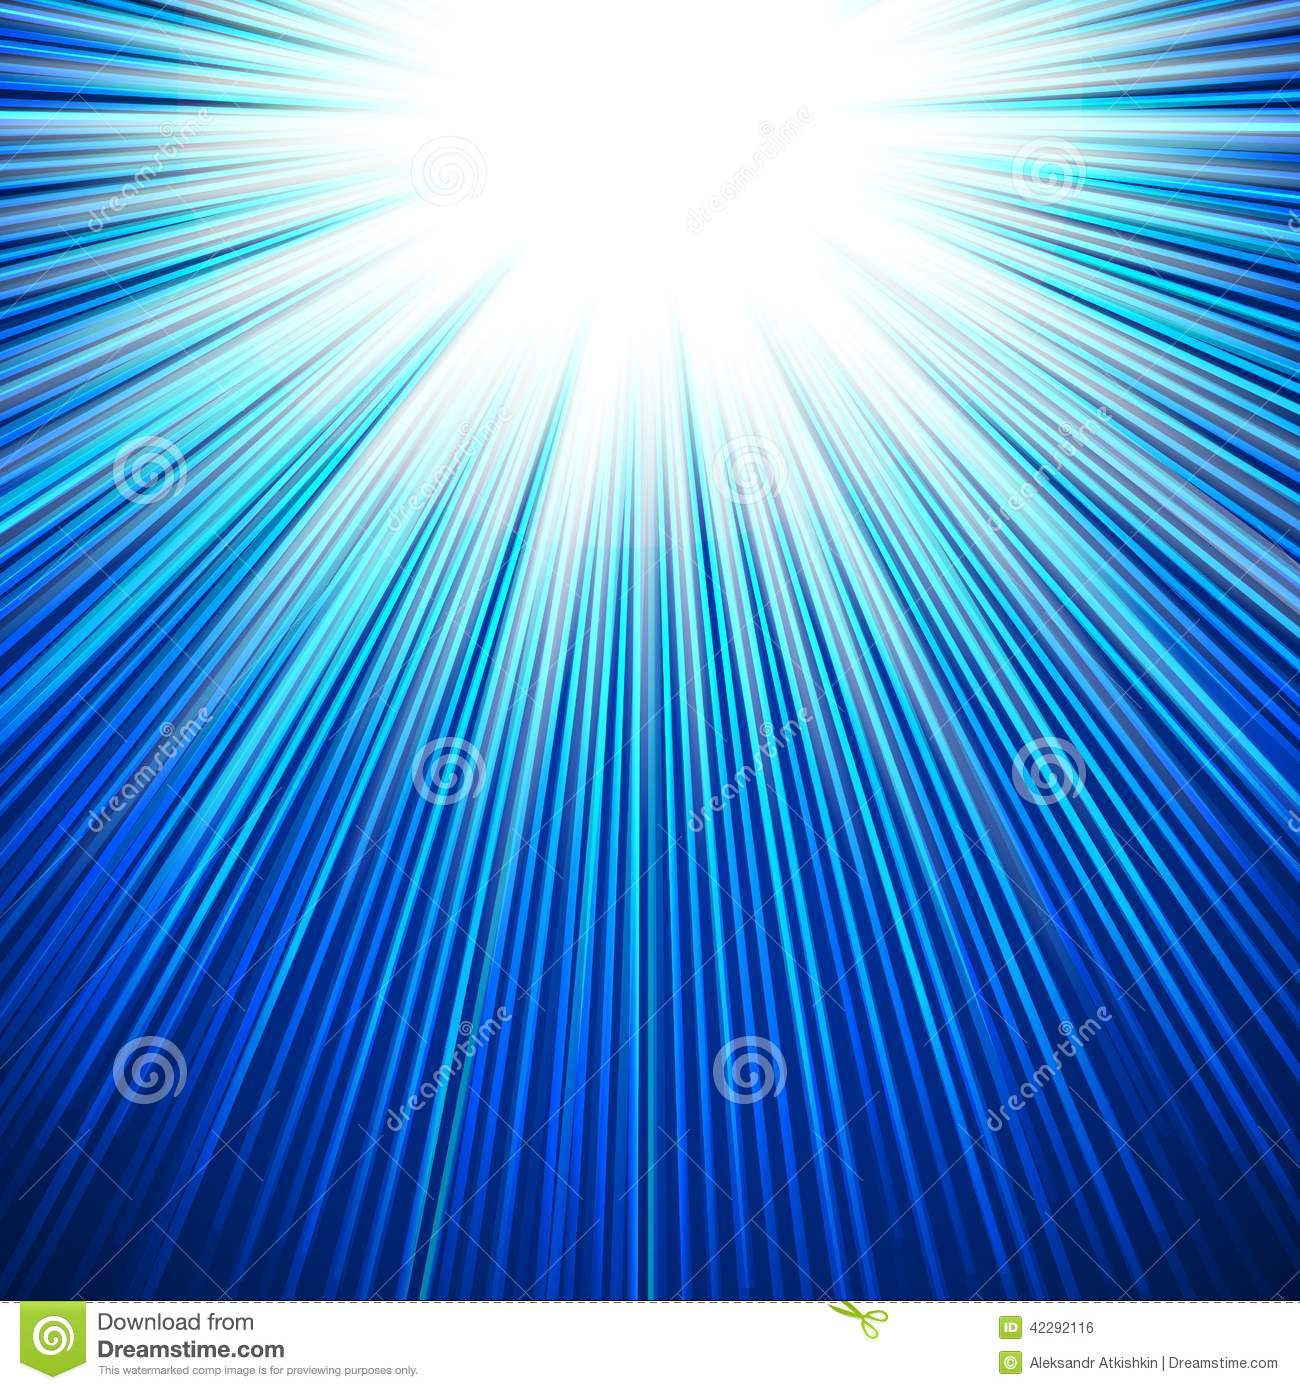 Cool Blue Wallpapers: Winter Sun Shiny Cool Blue Background Stock Vector